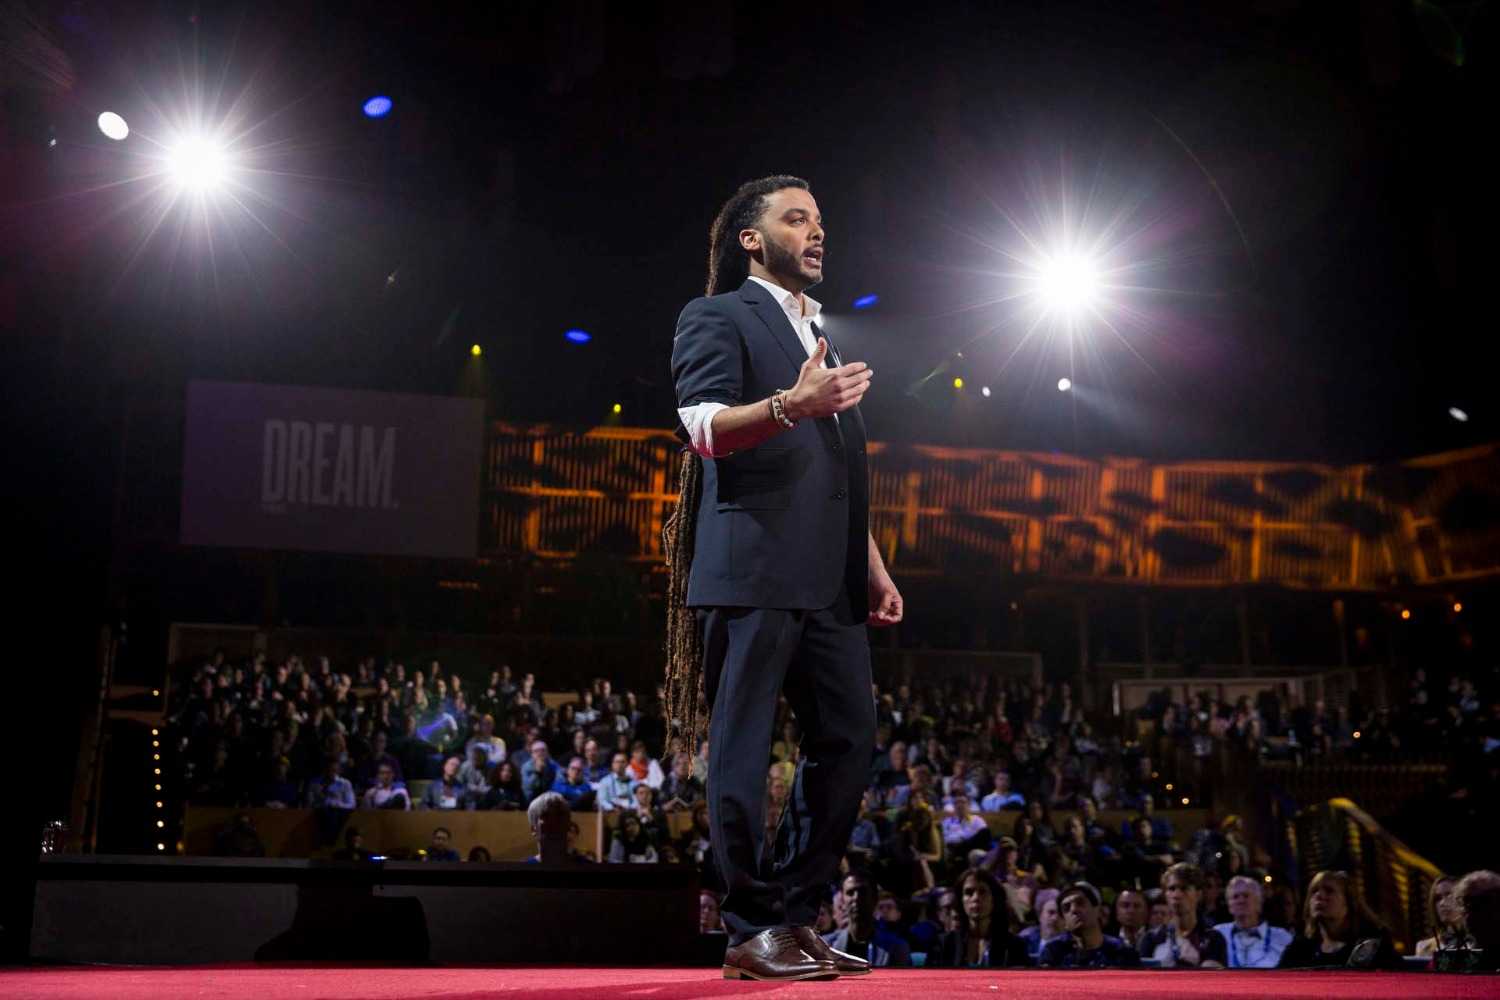 Adam Foss speaks at TED2016 - Dream, February 15-19, 2016, Vancouver Convention Center, Vancouver, Canada. Photo: Bret Hartman / TED